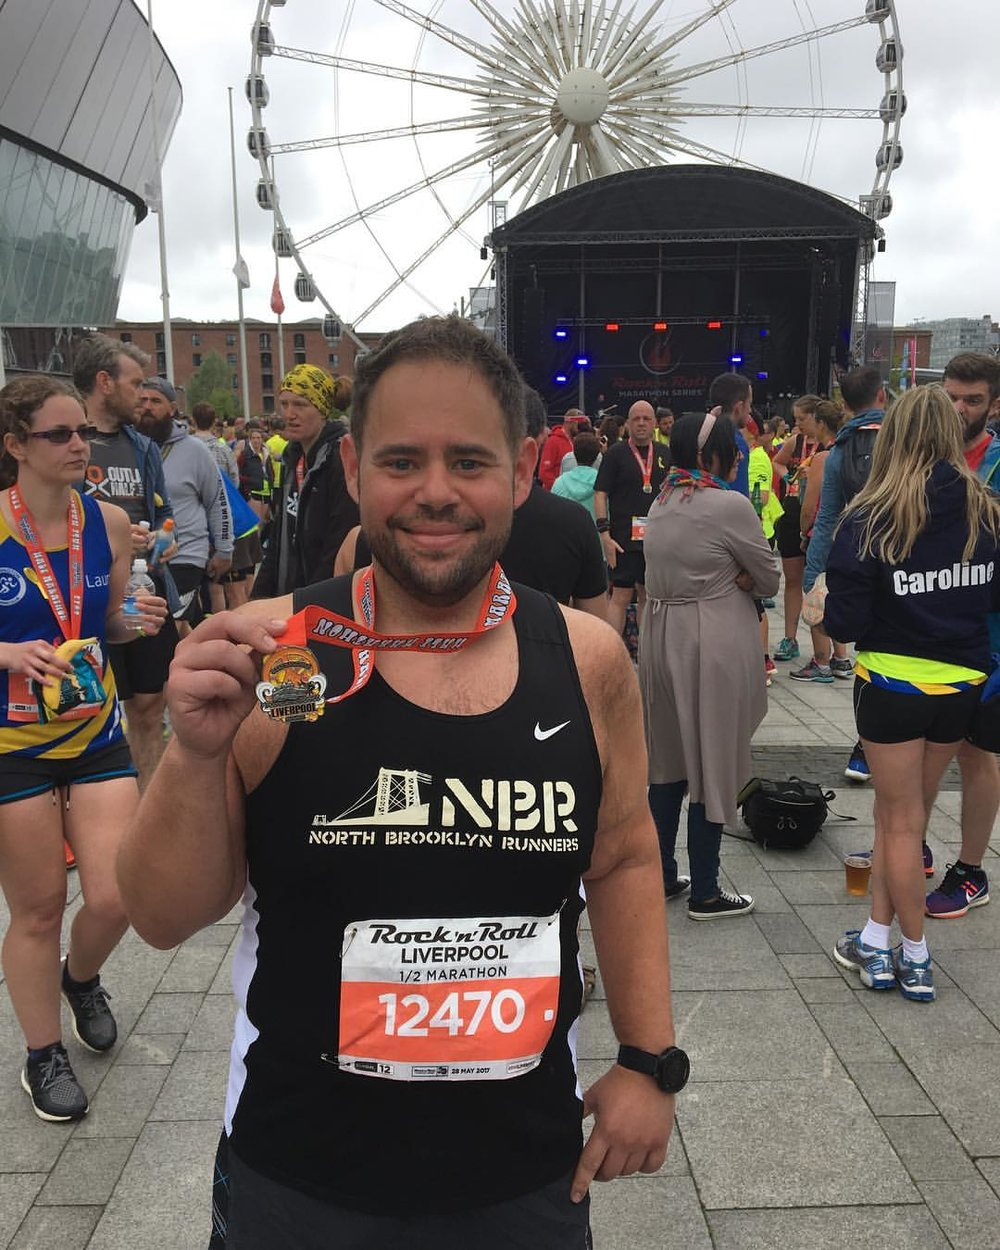 Showing off the medal after the Liverpool Half Marathon